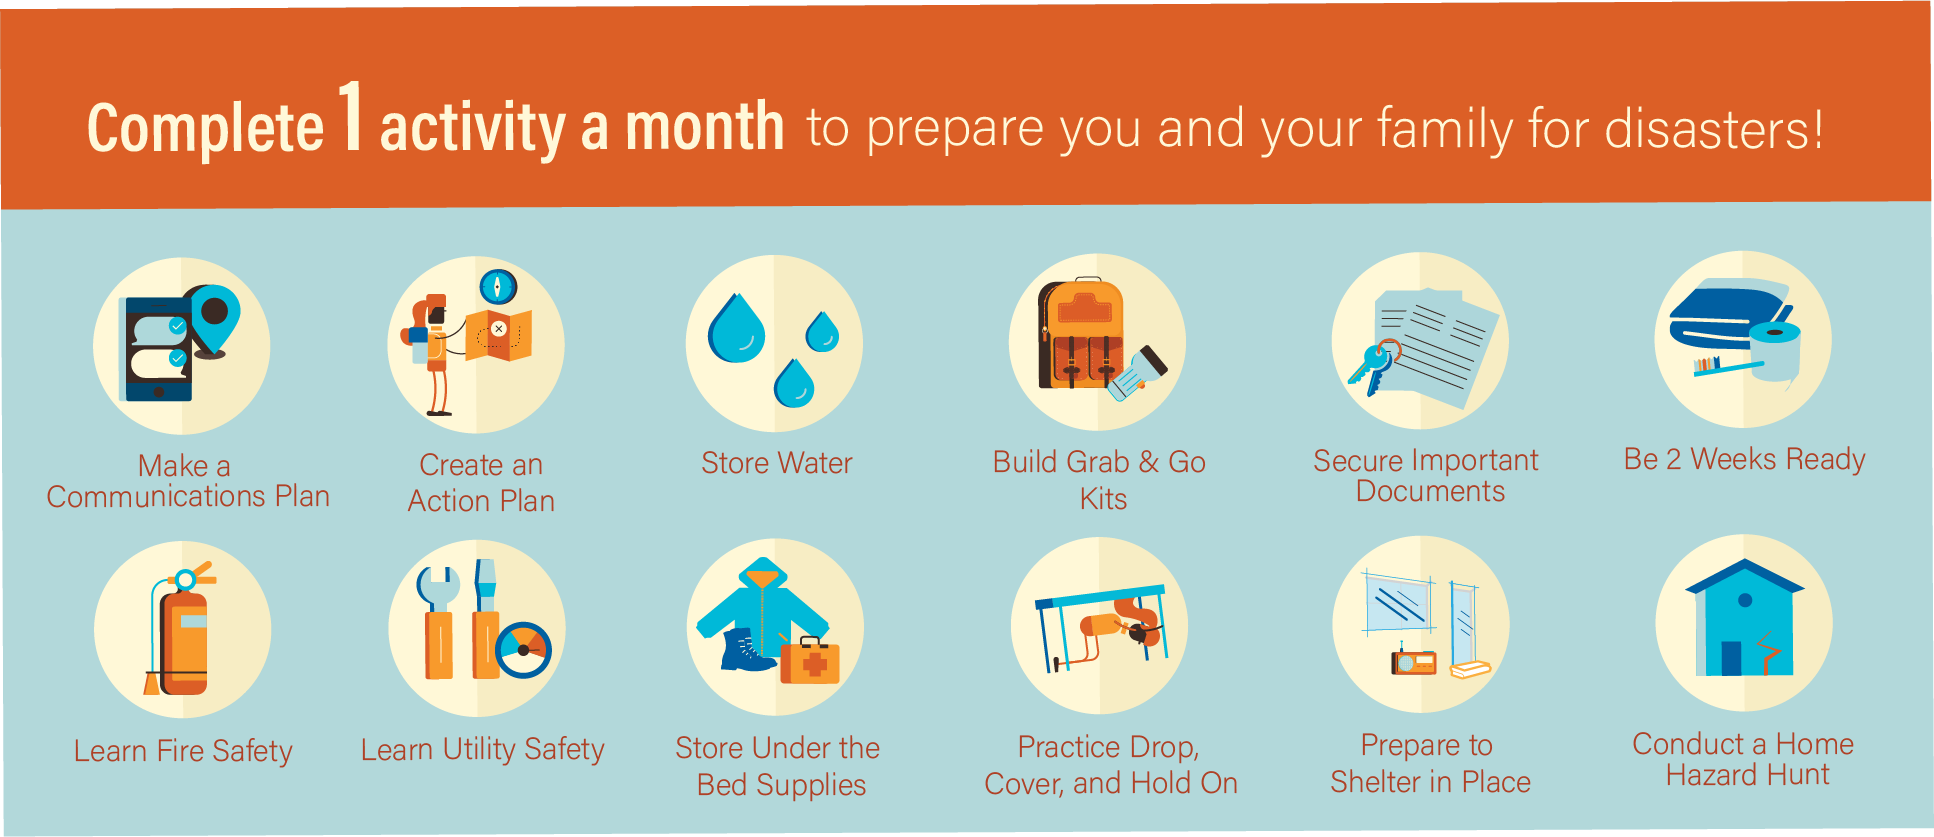 Icons show 12 different actions to take, one a month for the next year.